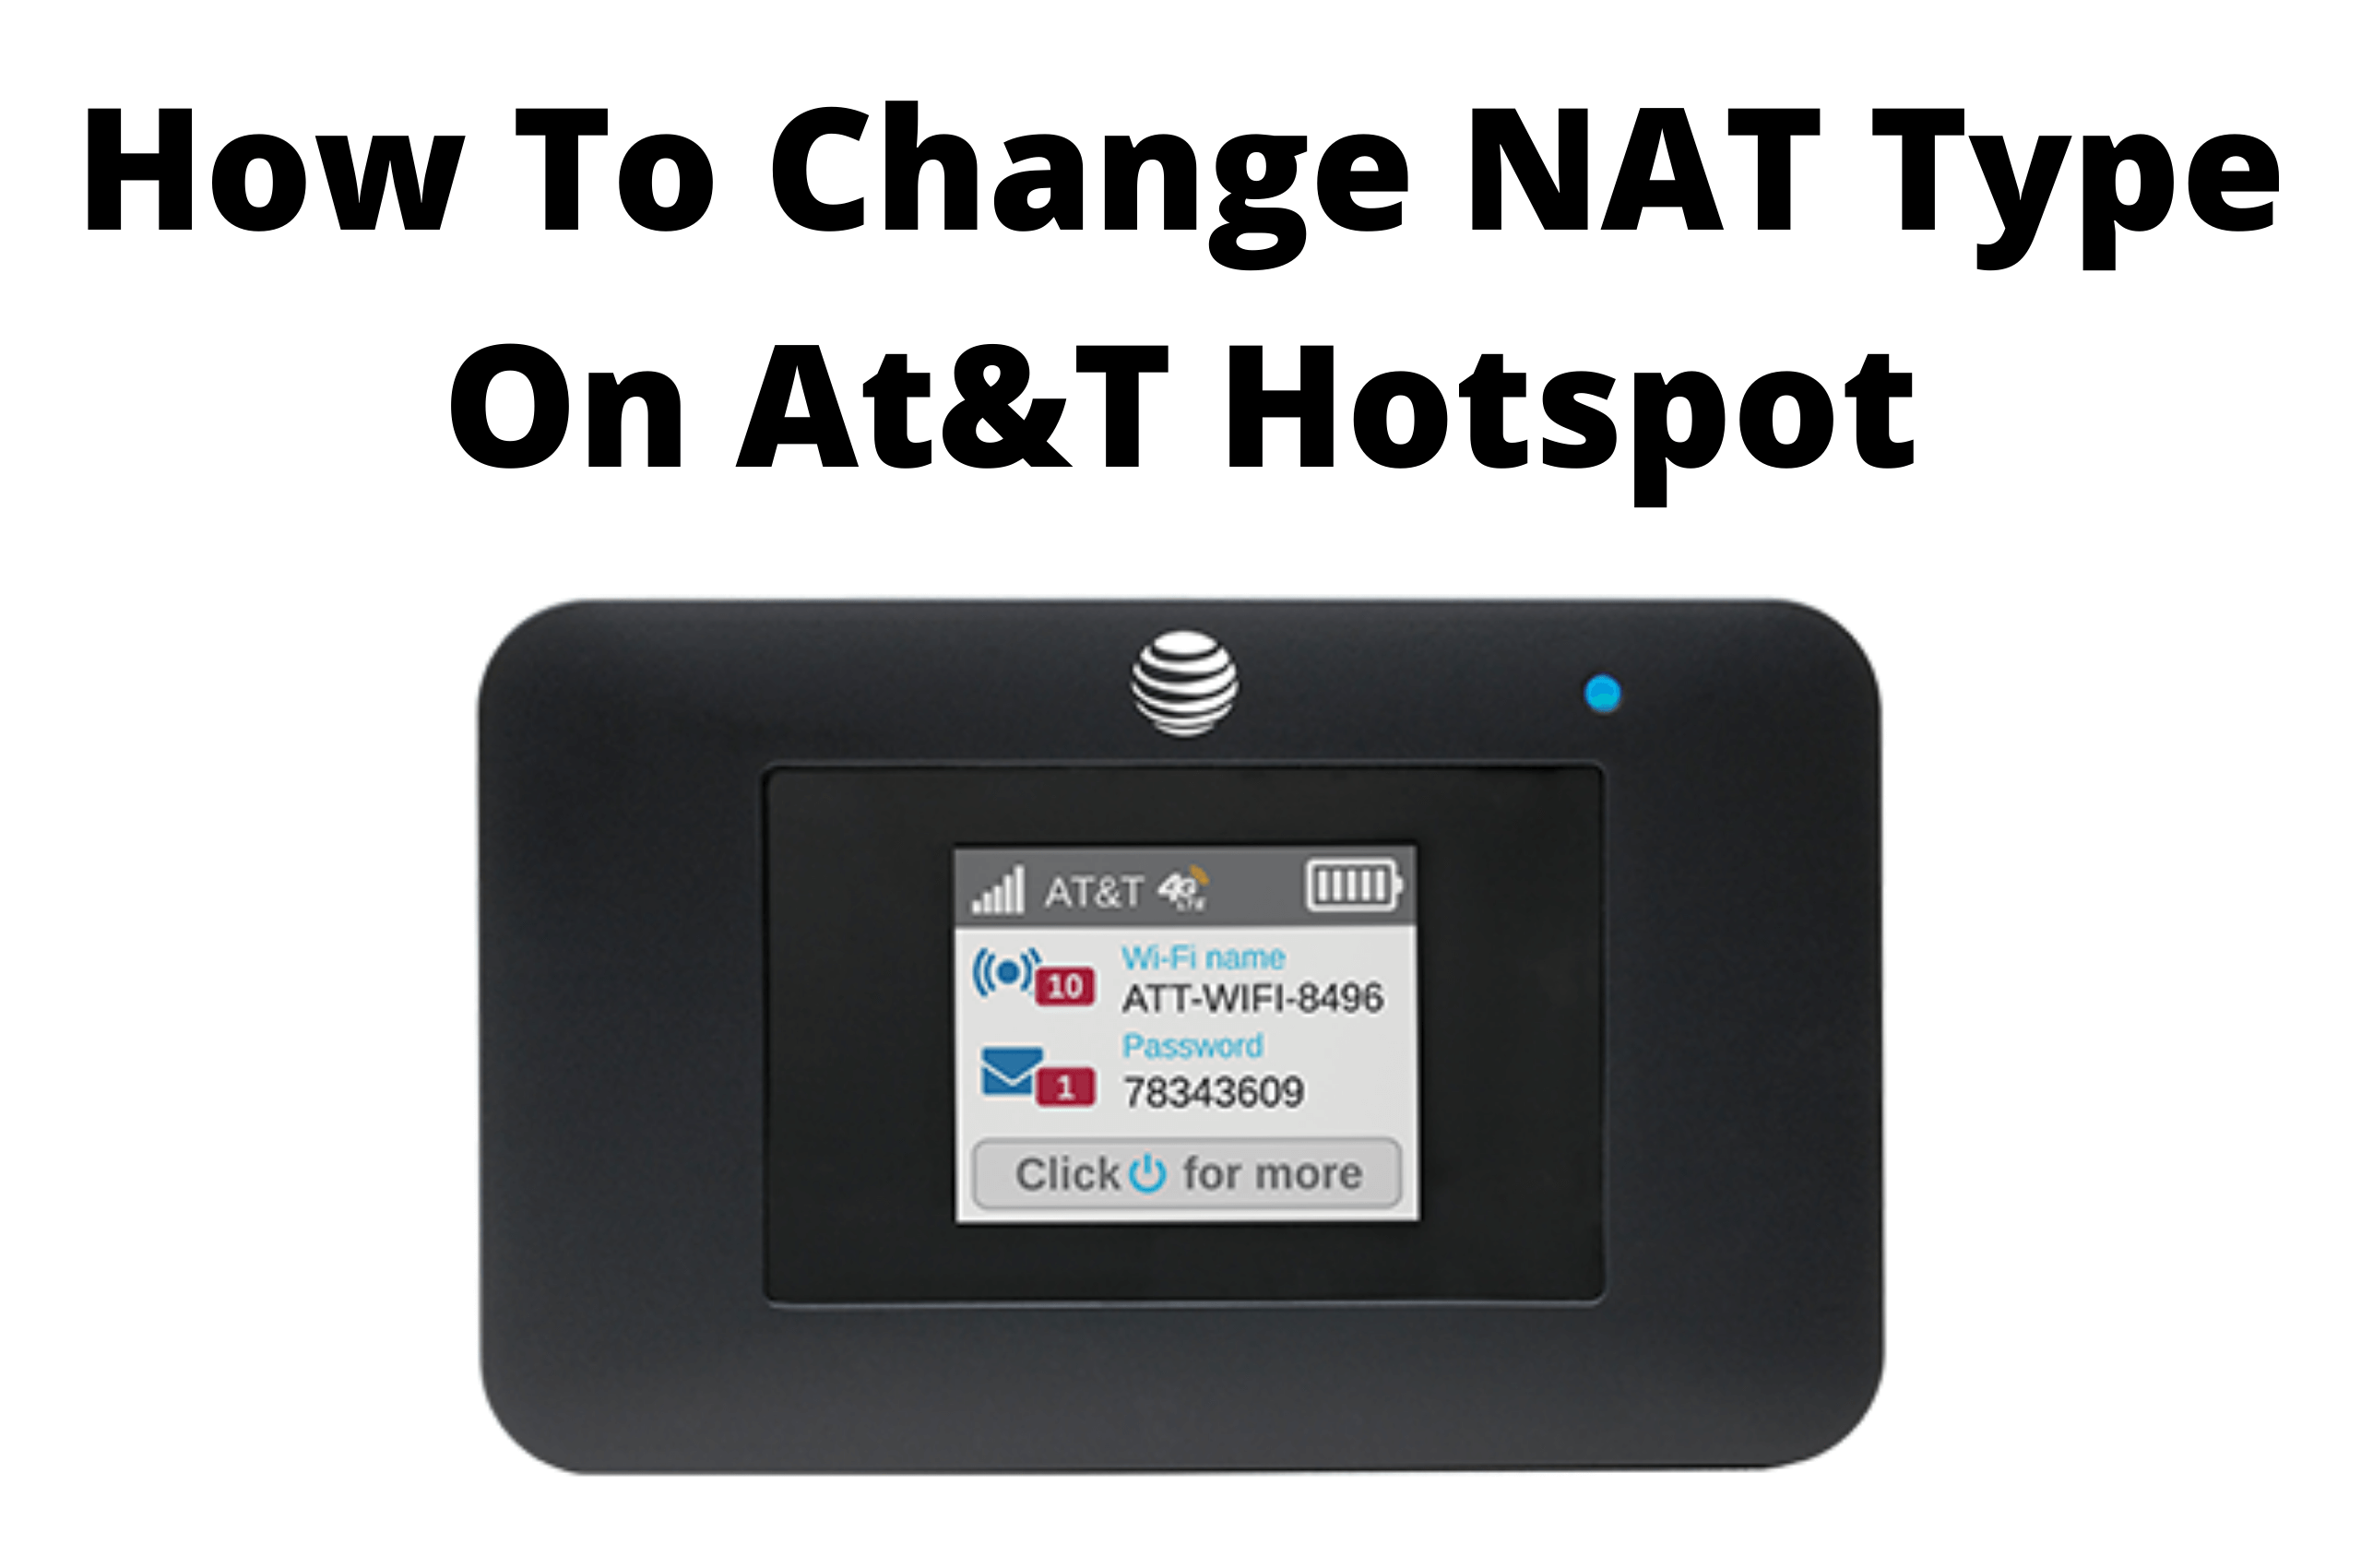 how to change nat type on at&t hotspot